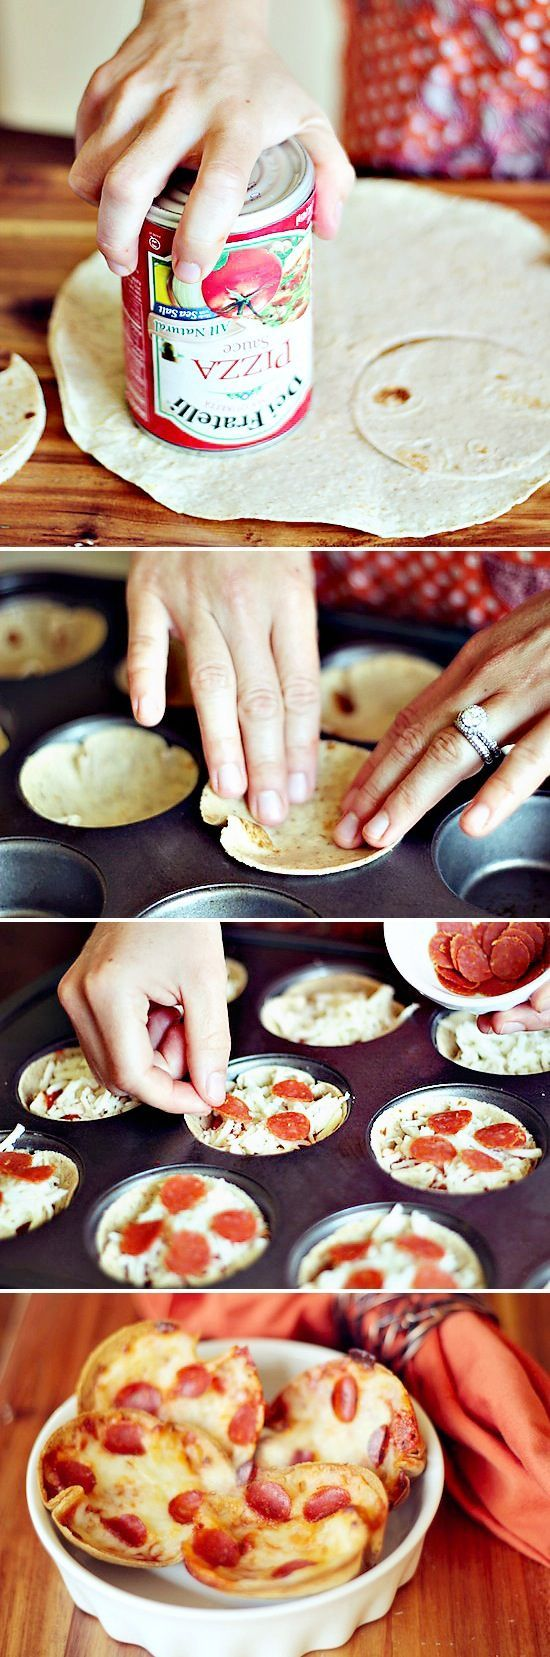 Mini Tortilla Crust Pizzas - great idea for individual sized portions